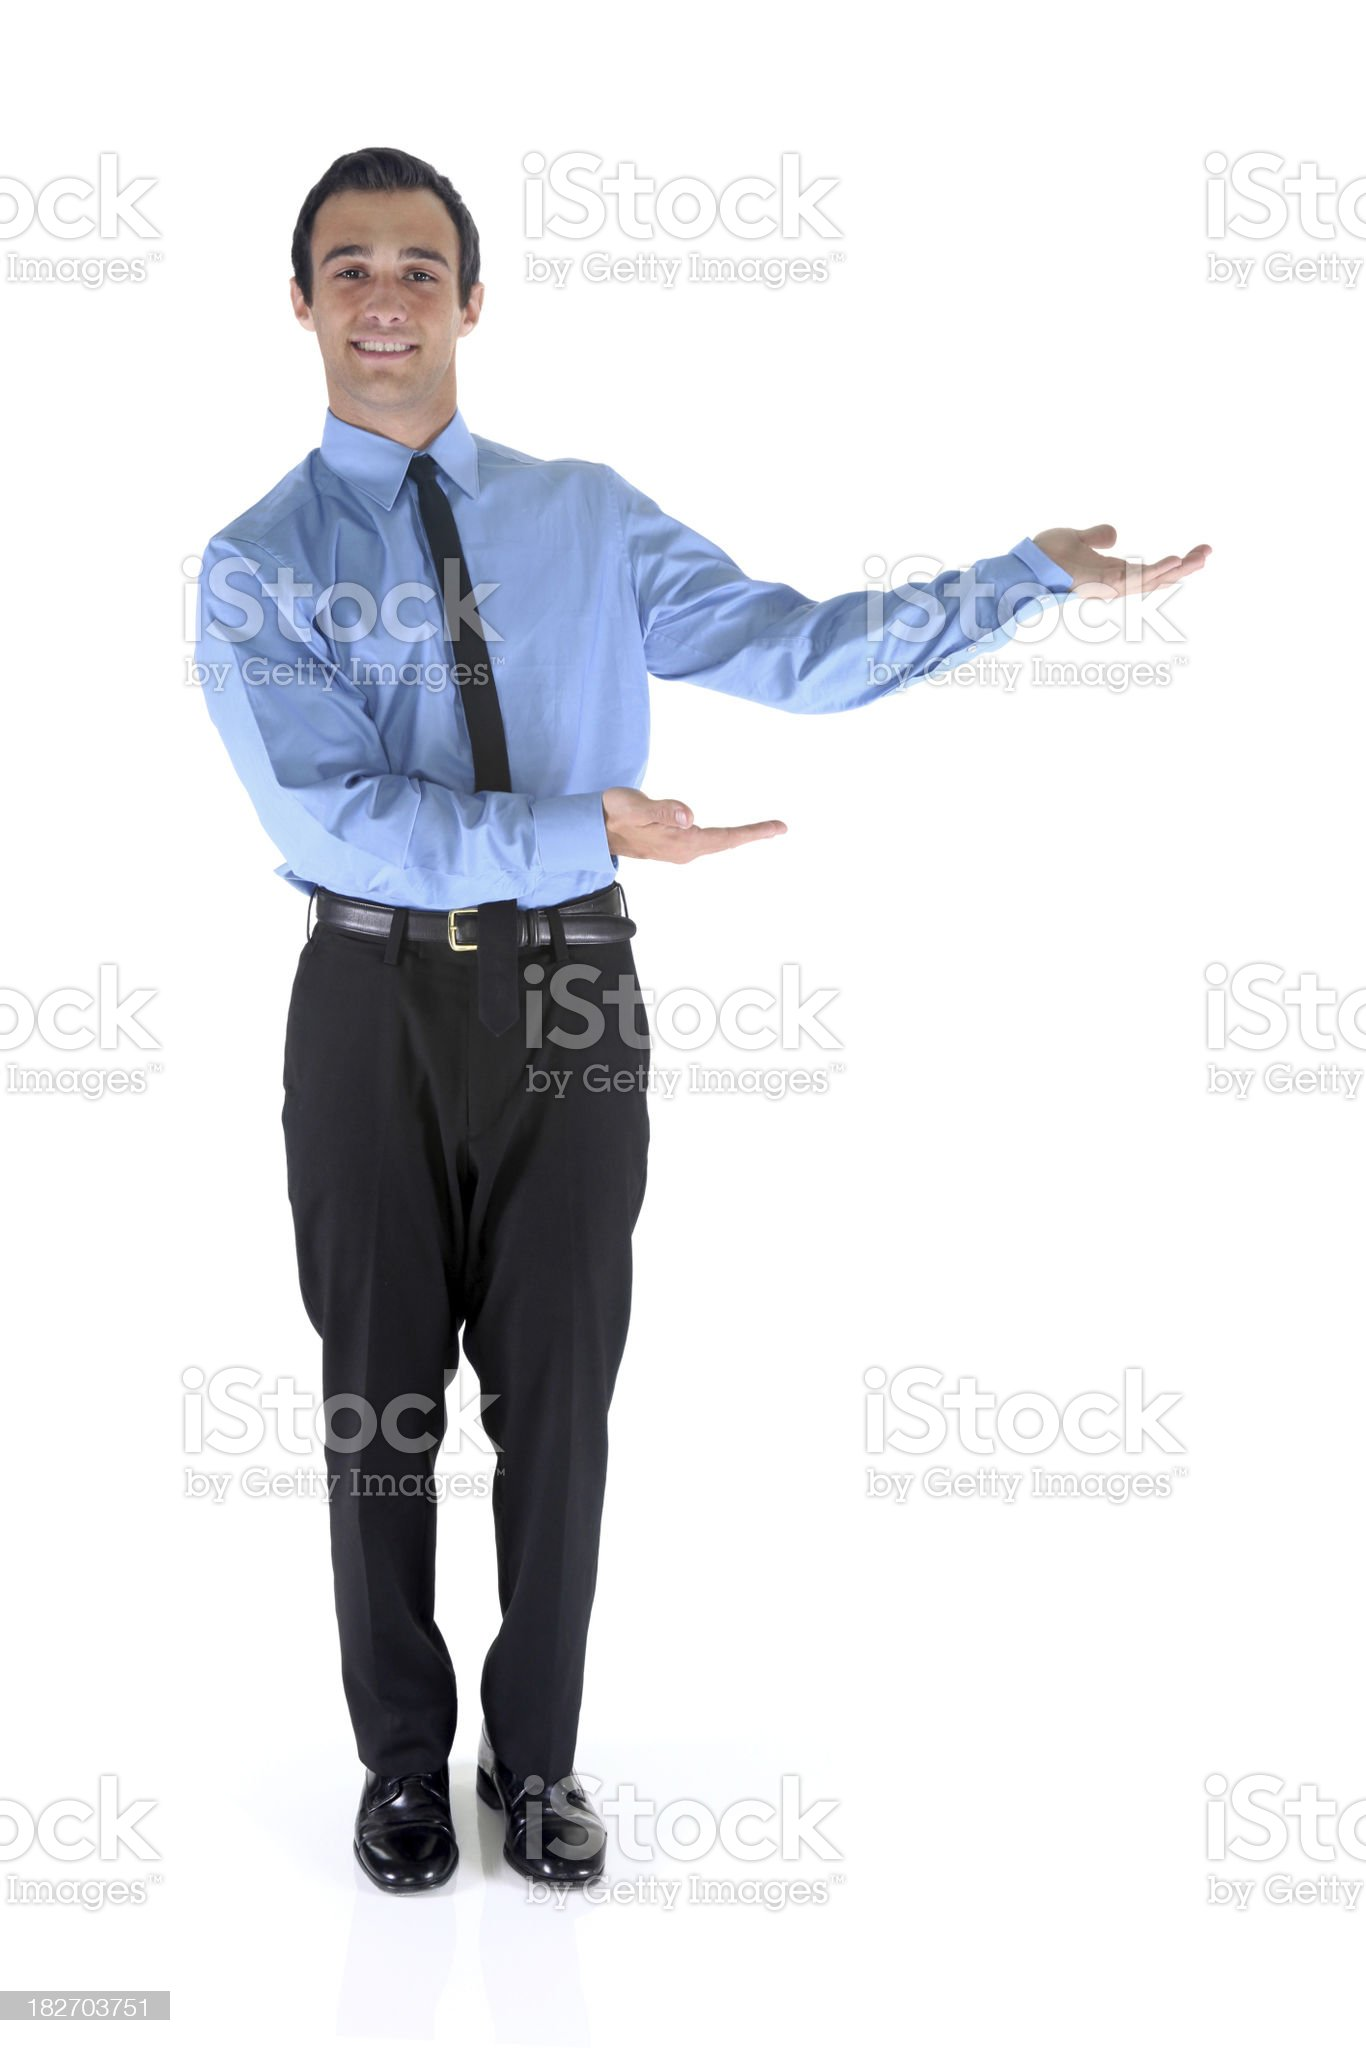 Isolated businessman presenting to the side royalty-free stock photo